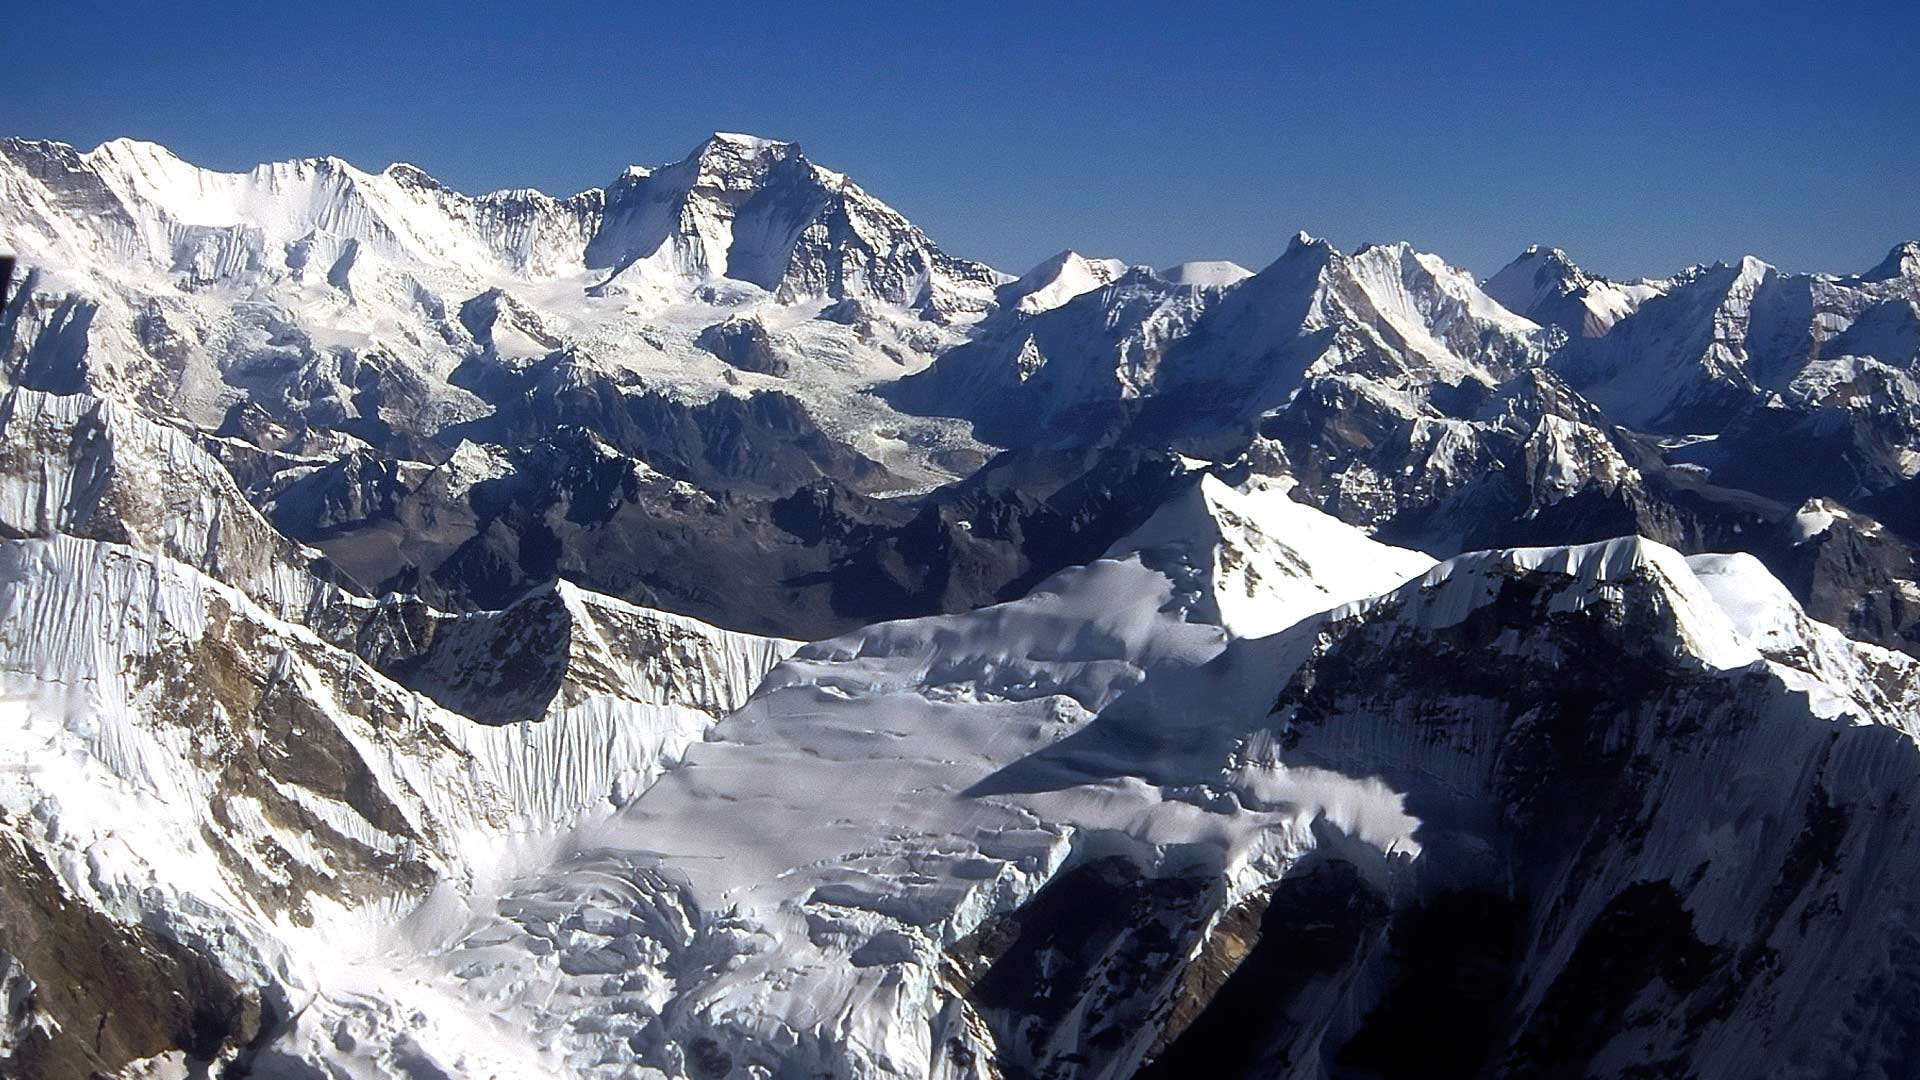 Aerial view of the Himalayas, Everest National Park, Purwanchal (Eastern Region), Nepal